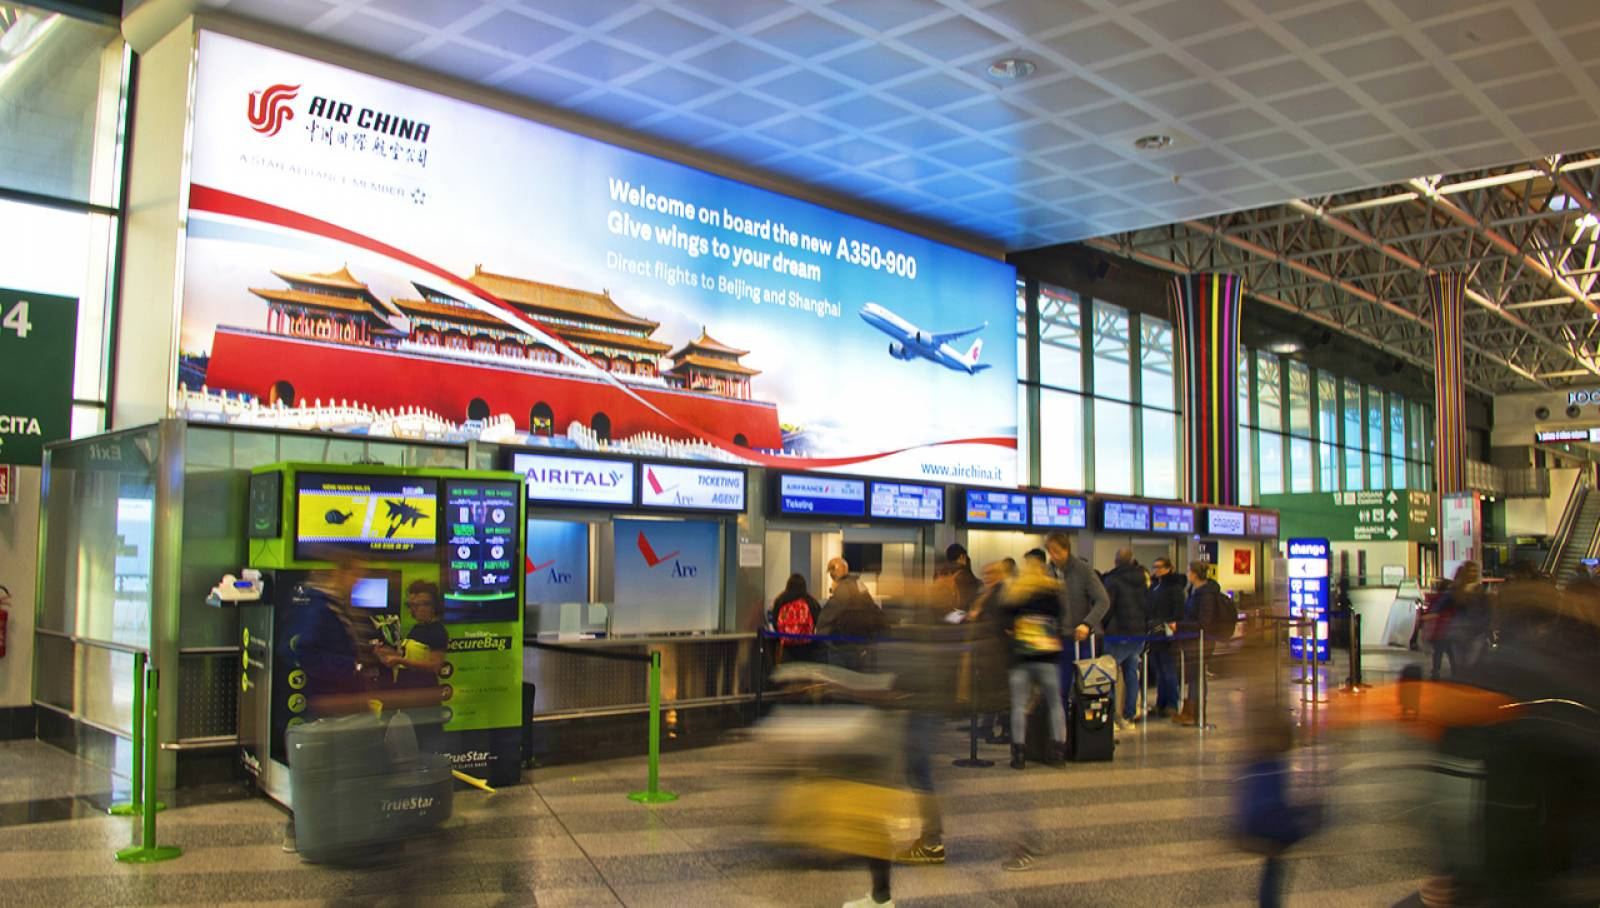 Malpensa airport advertising IGPDecaux backlight for Air China